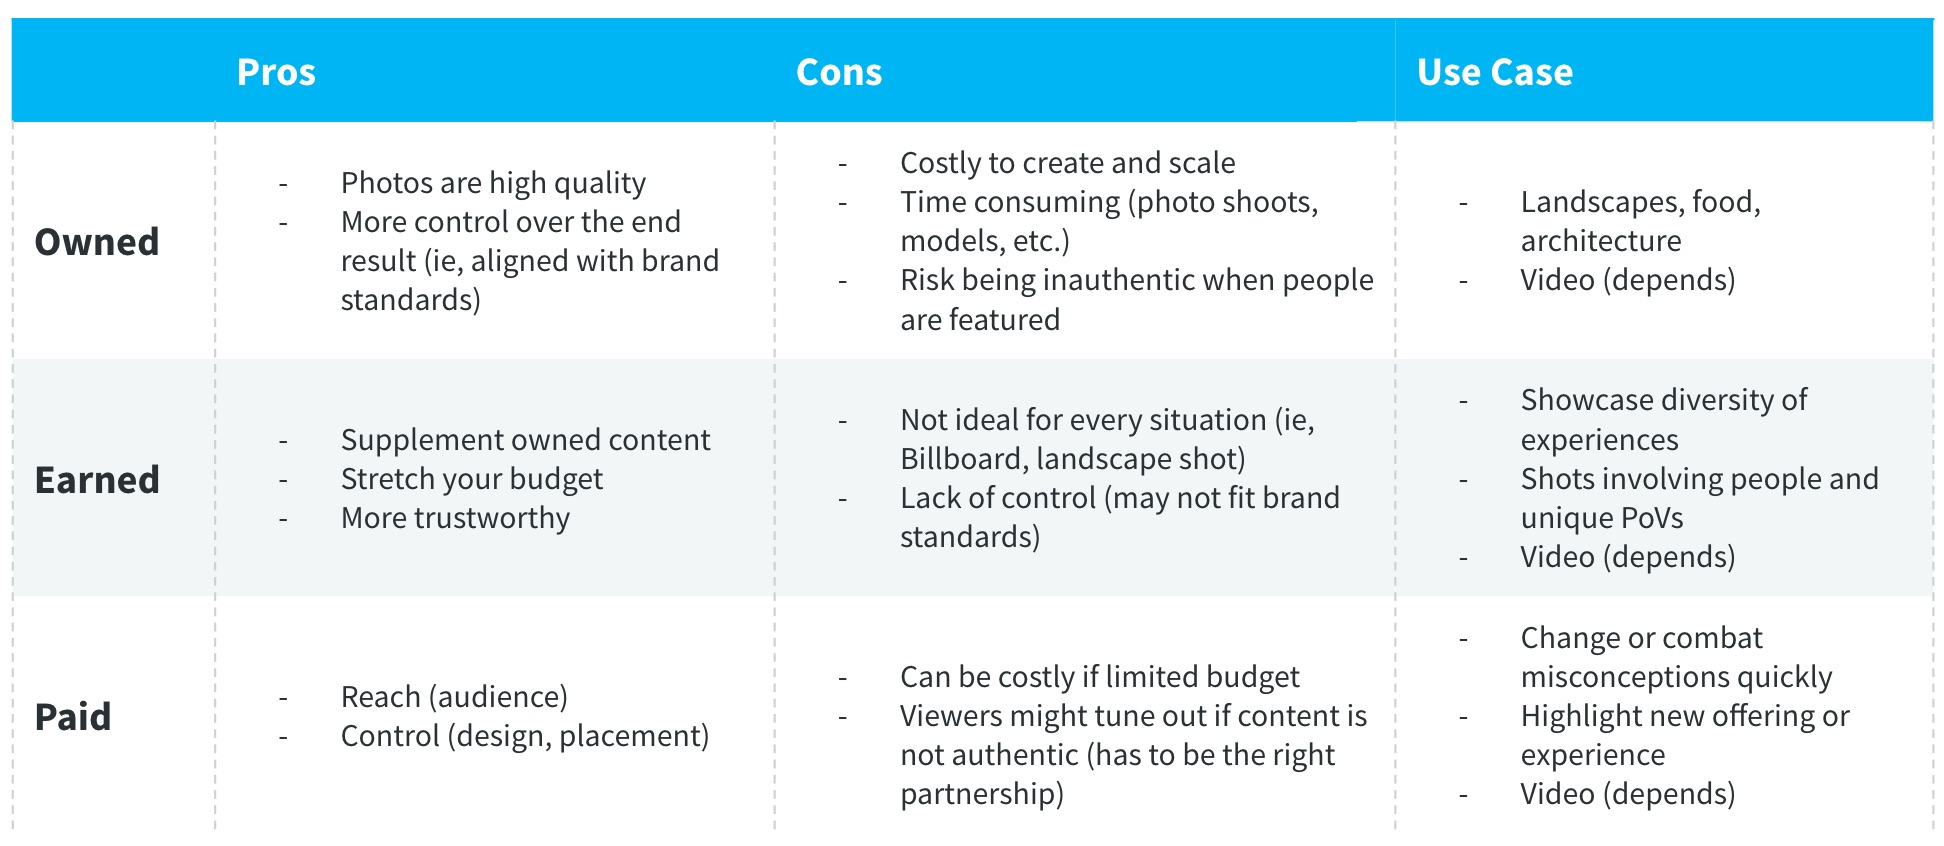 The pros and cons of owned, earned and paid visual content